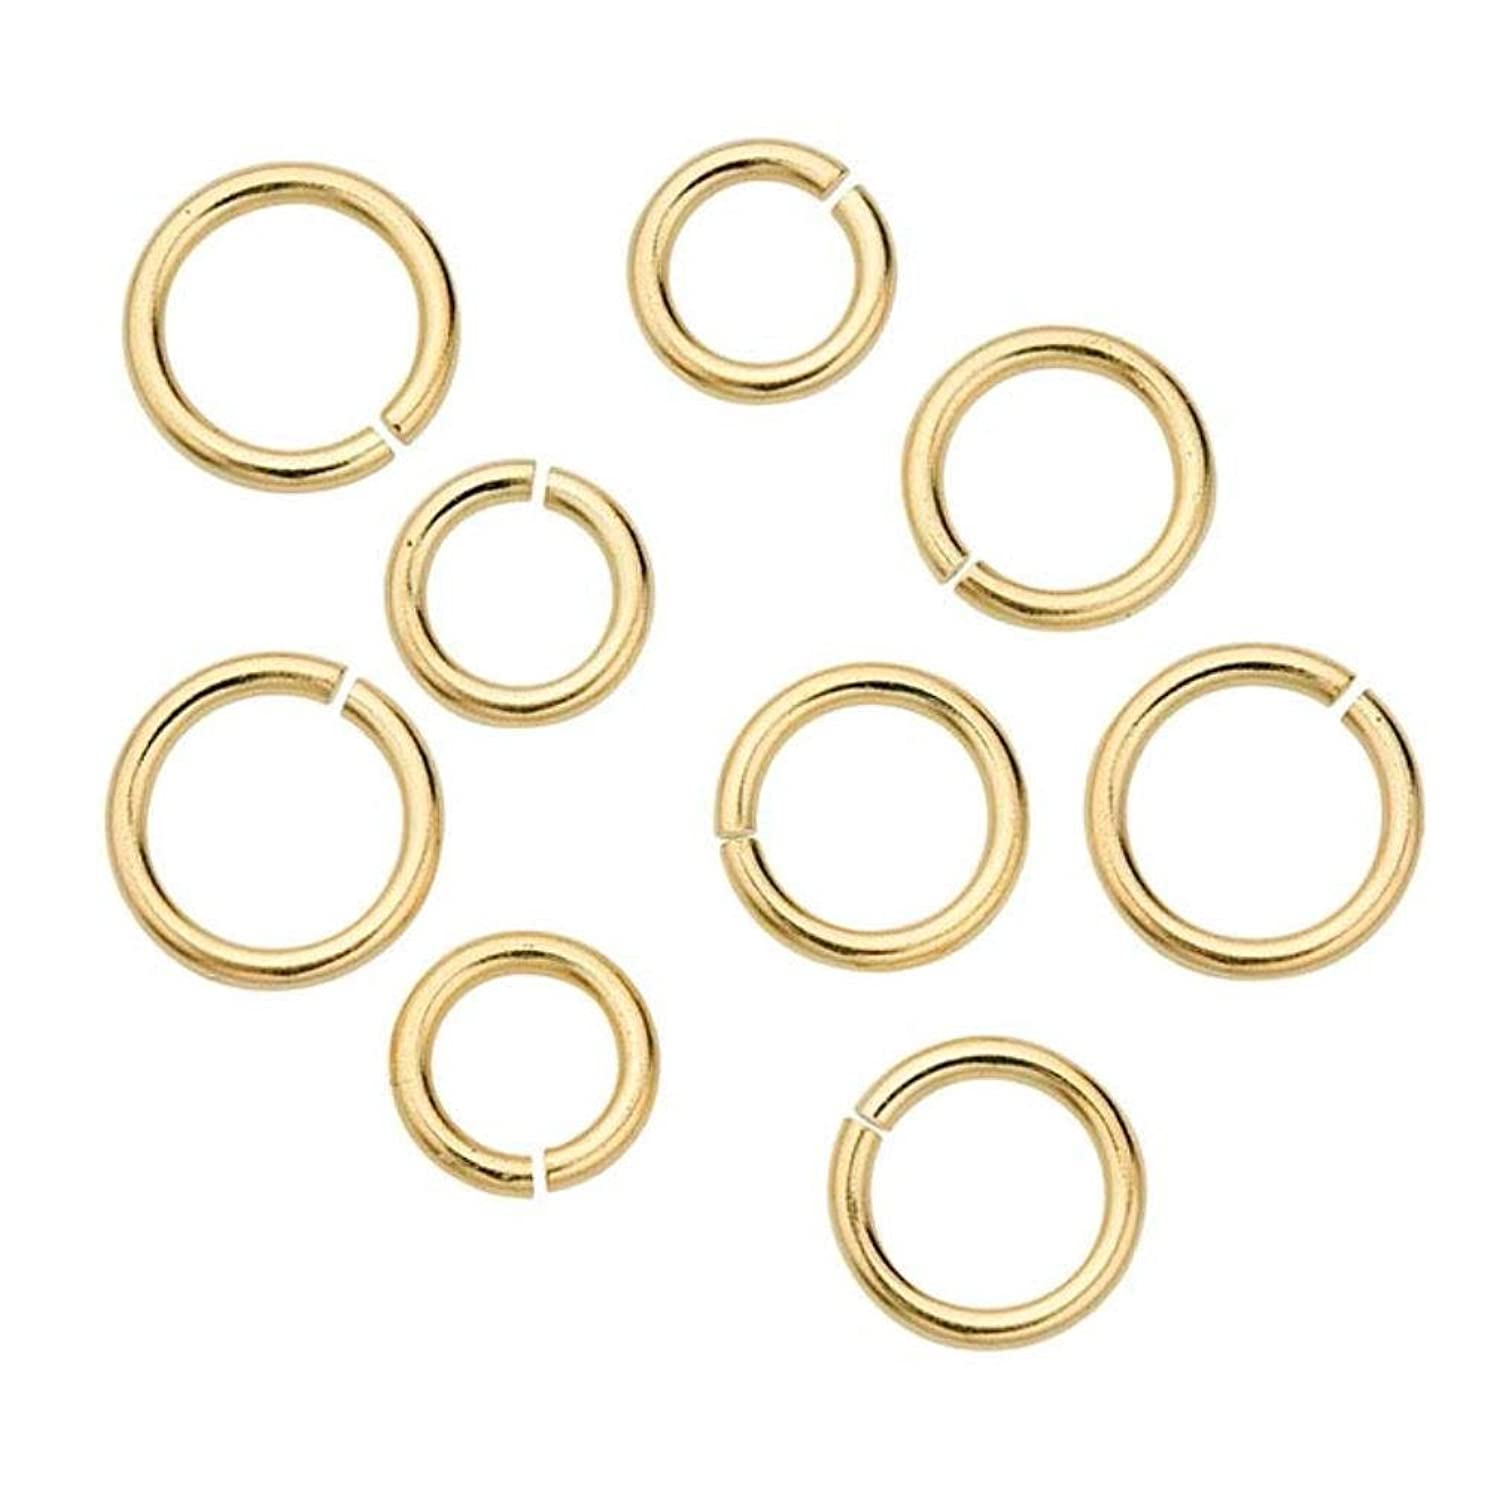 100pcs 14k Gold on Sterling Silver Open Jump Rings 4mm Small Jump Rings (Wire ~22GA) for Jewelry Craft Making SS289-4